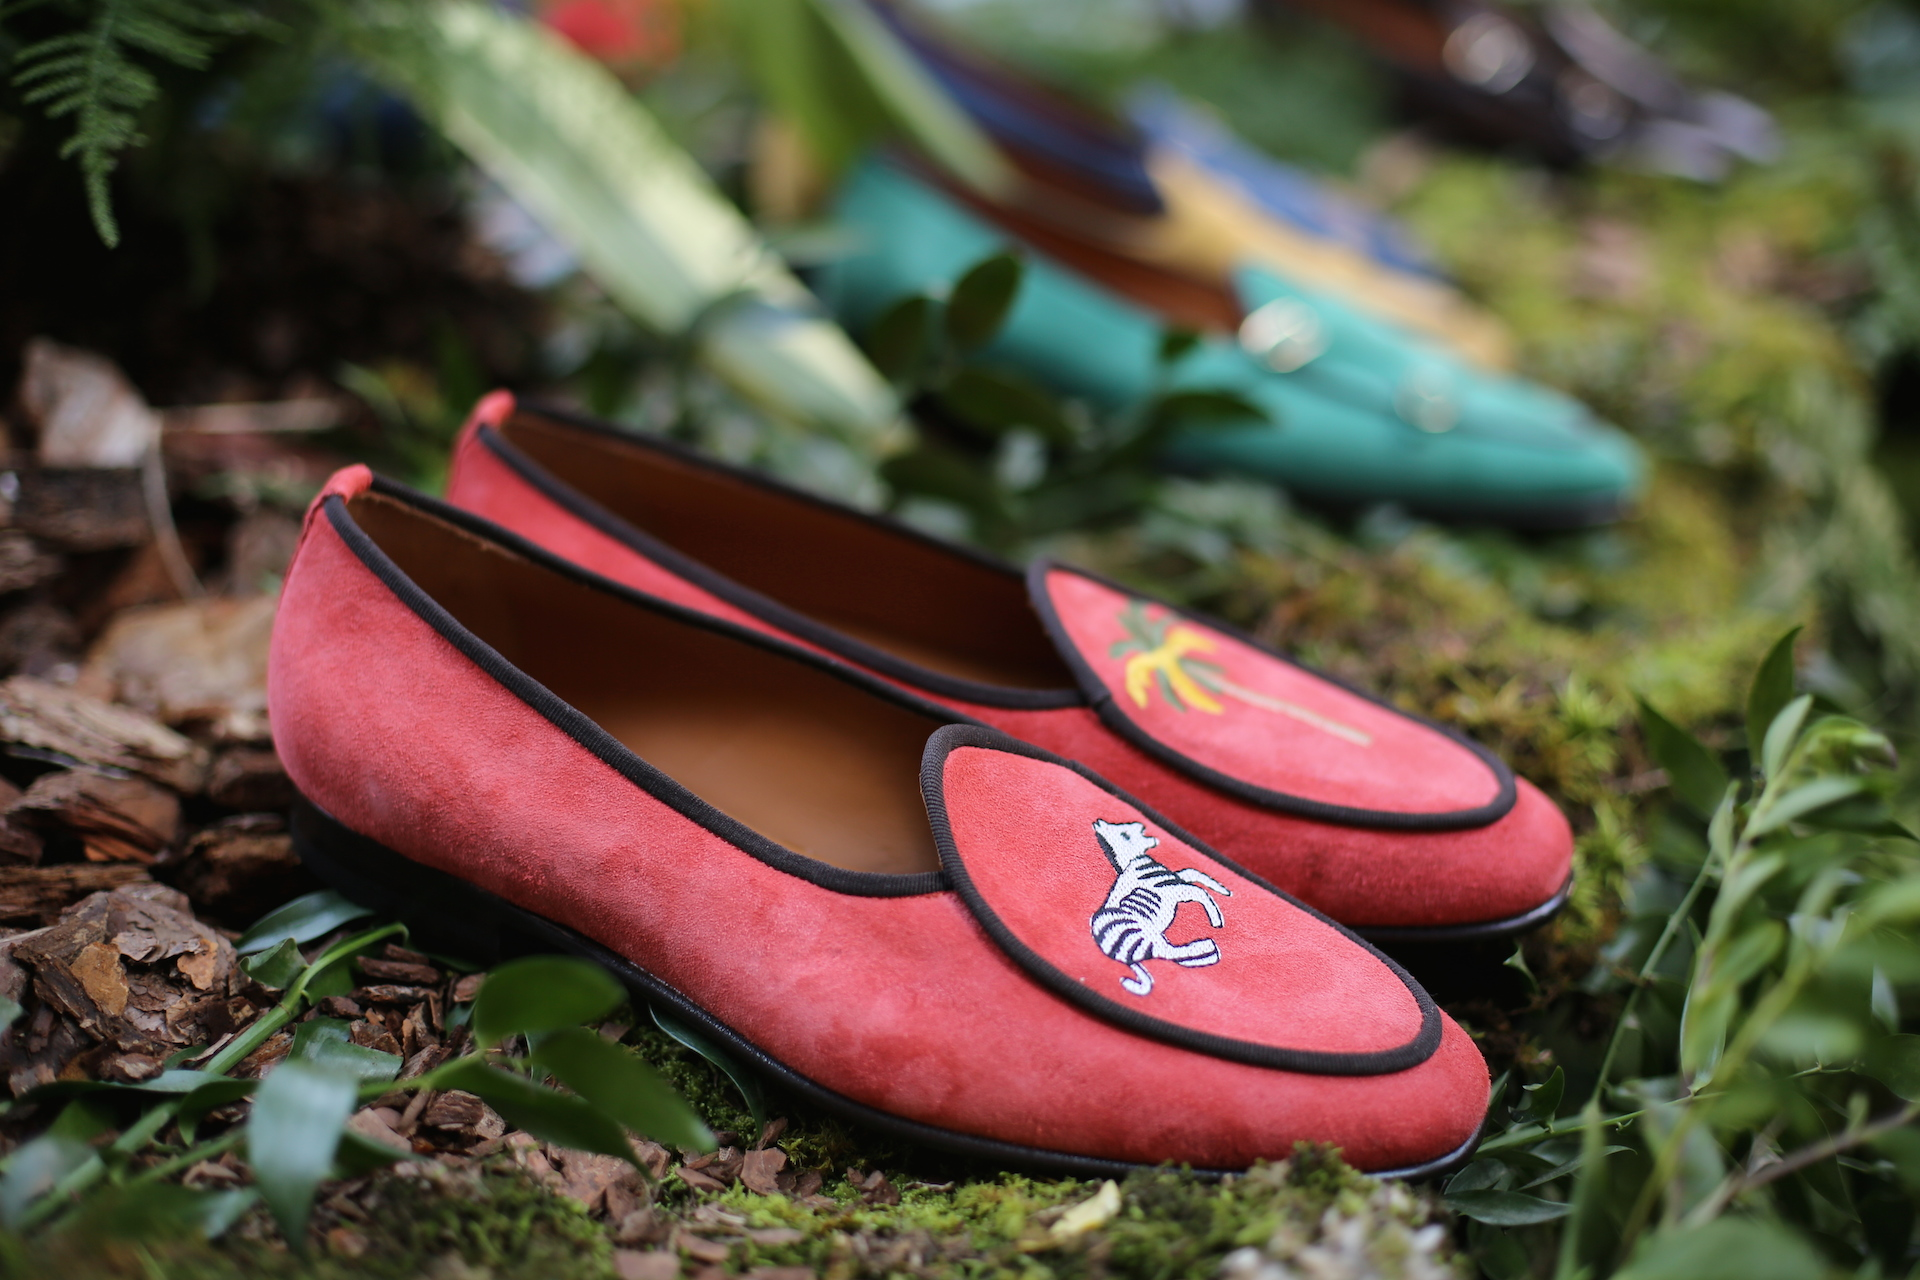 EDHÈN Milano Kensington loafers embroideries